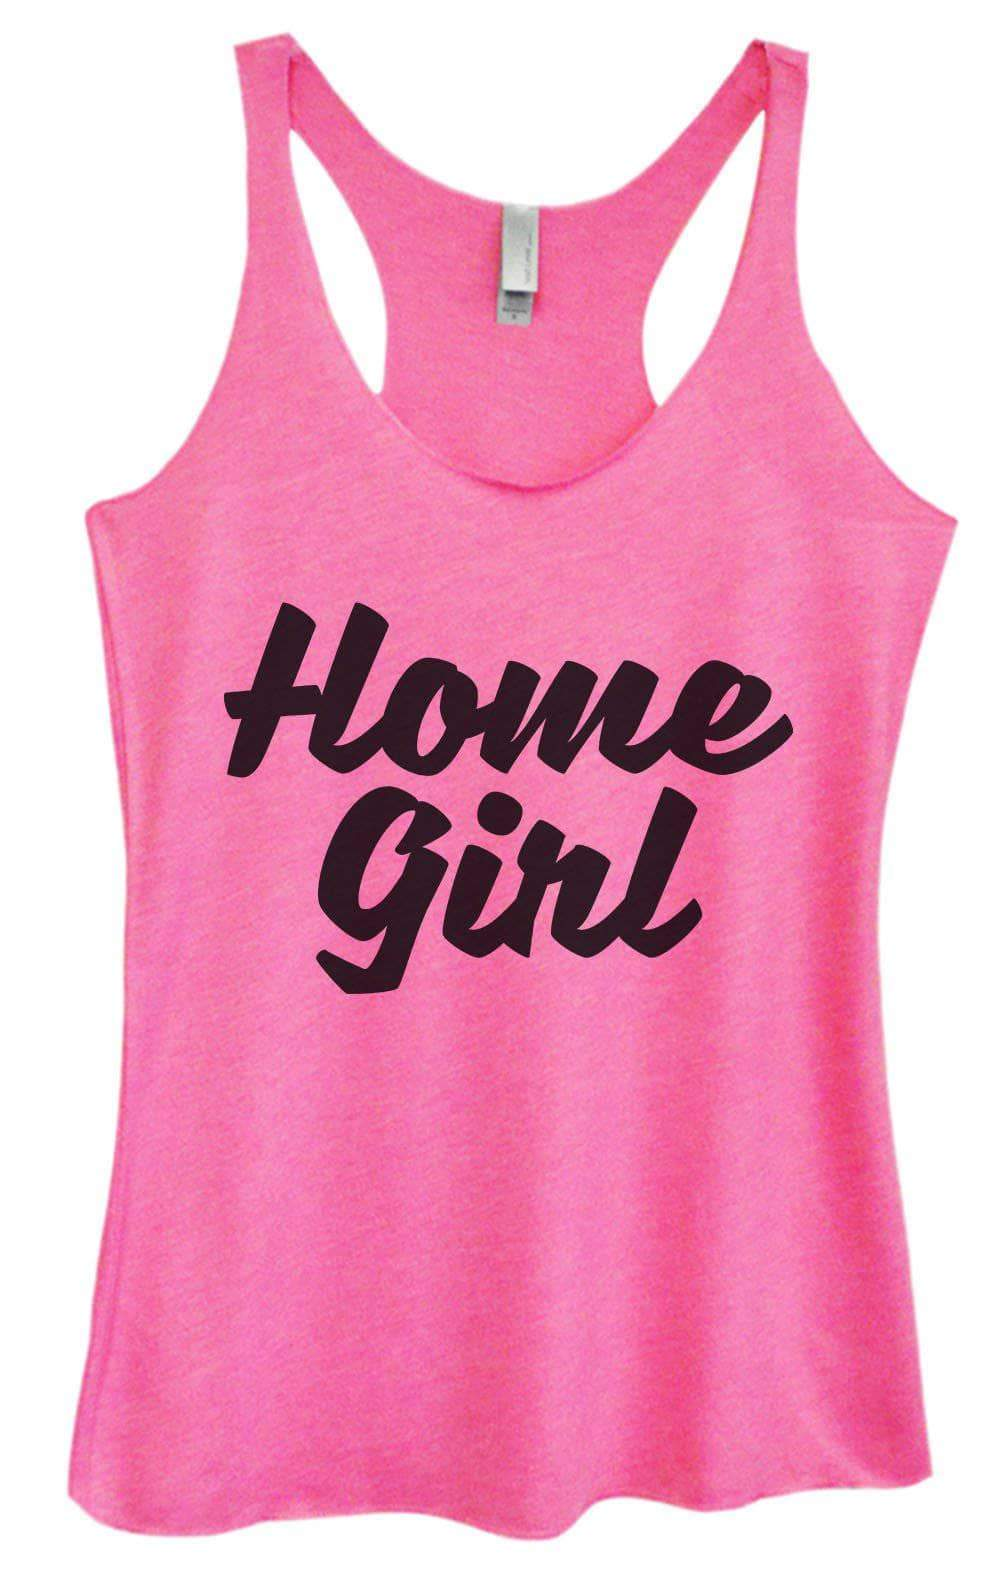 Womens Tri-Blend Tank Top - Home Girl Small Womens Tank Tops Vintage Pink